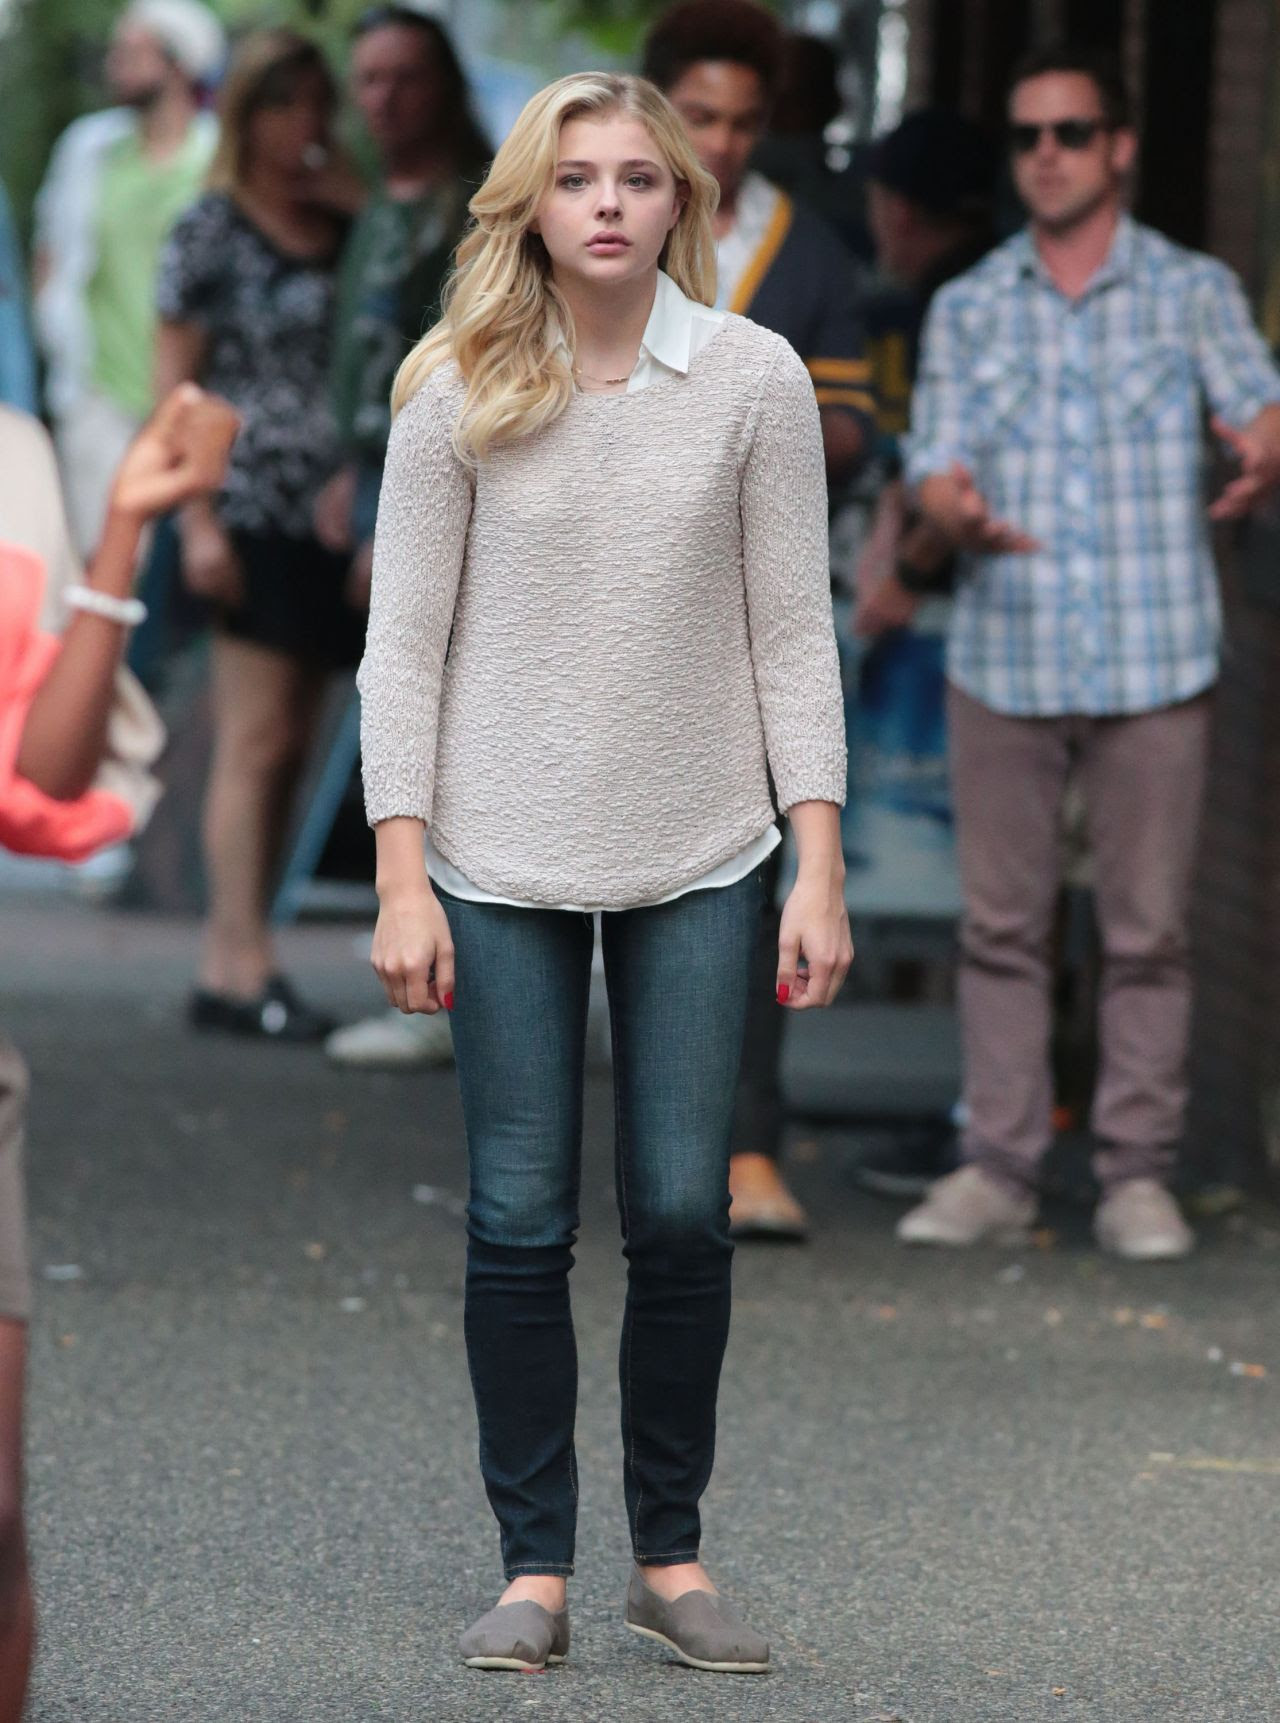 http://celebmafia.com/wp-content/uploads/2015/07/chloe-moretz-set-of-brain-on-fire-in-vancouver-july-2015_5.jpg